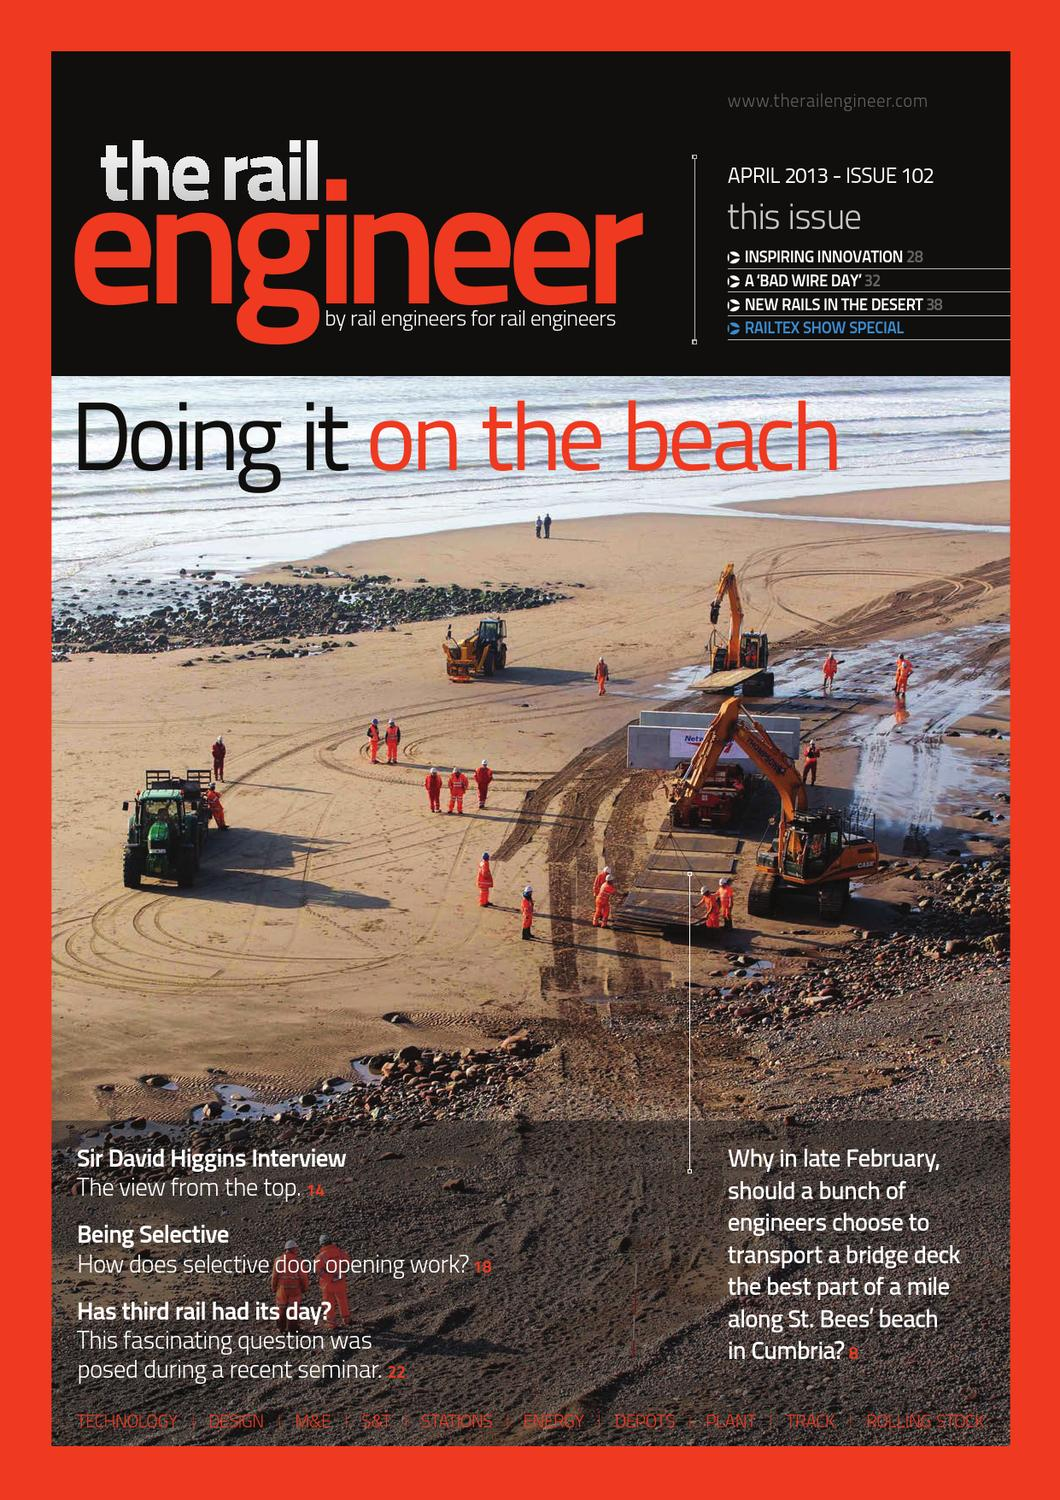 The Rail Engineer Issue 102 April 2013 By Media Issuu Nationals Say Faulty Circuit Breaker Not Taylor Swift Caused Power